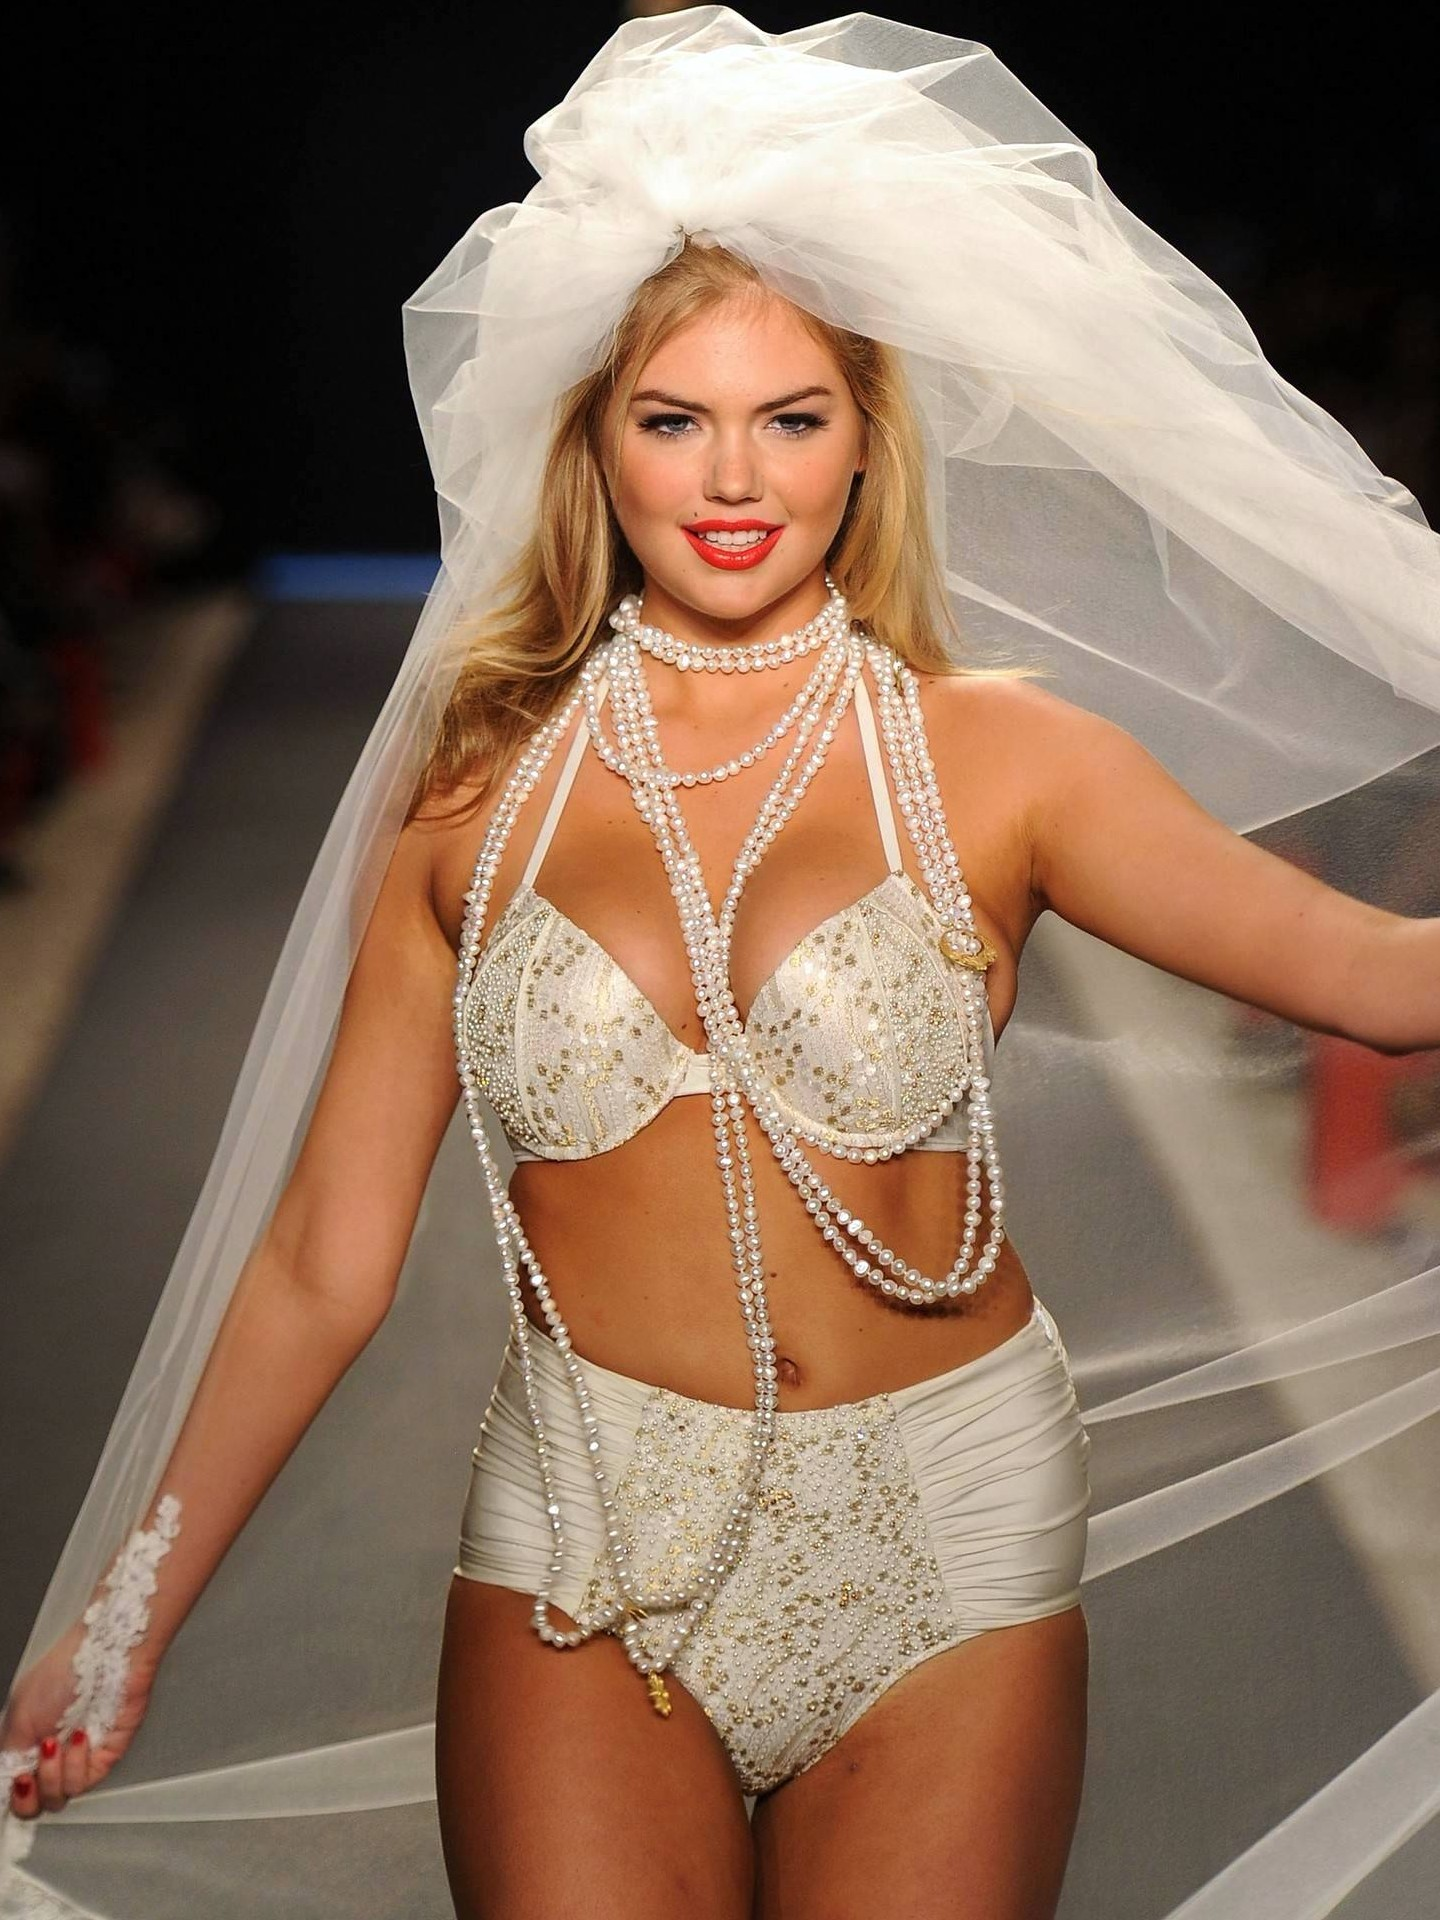 kate upton celebrities female wallpaper